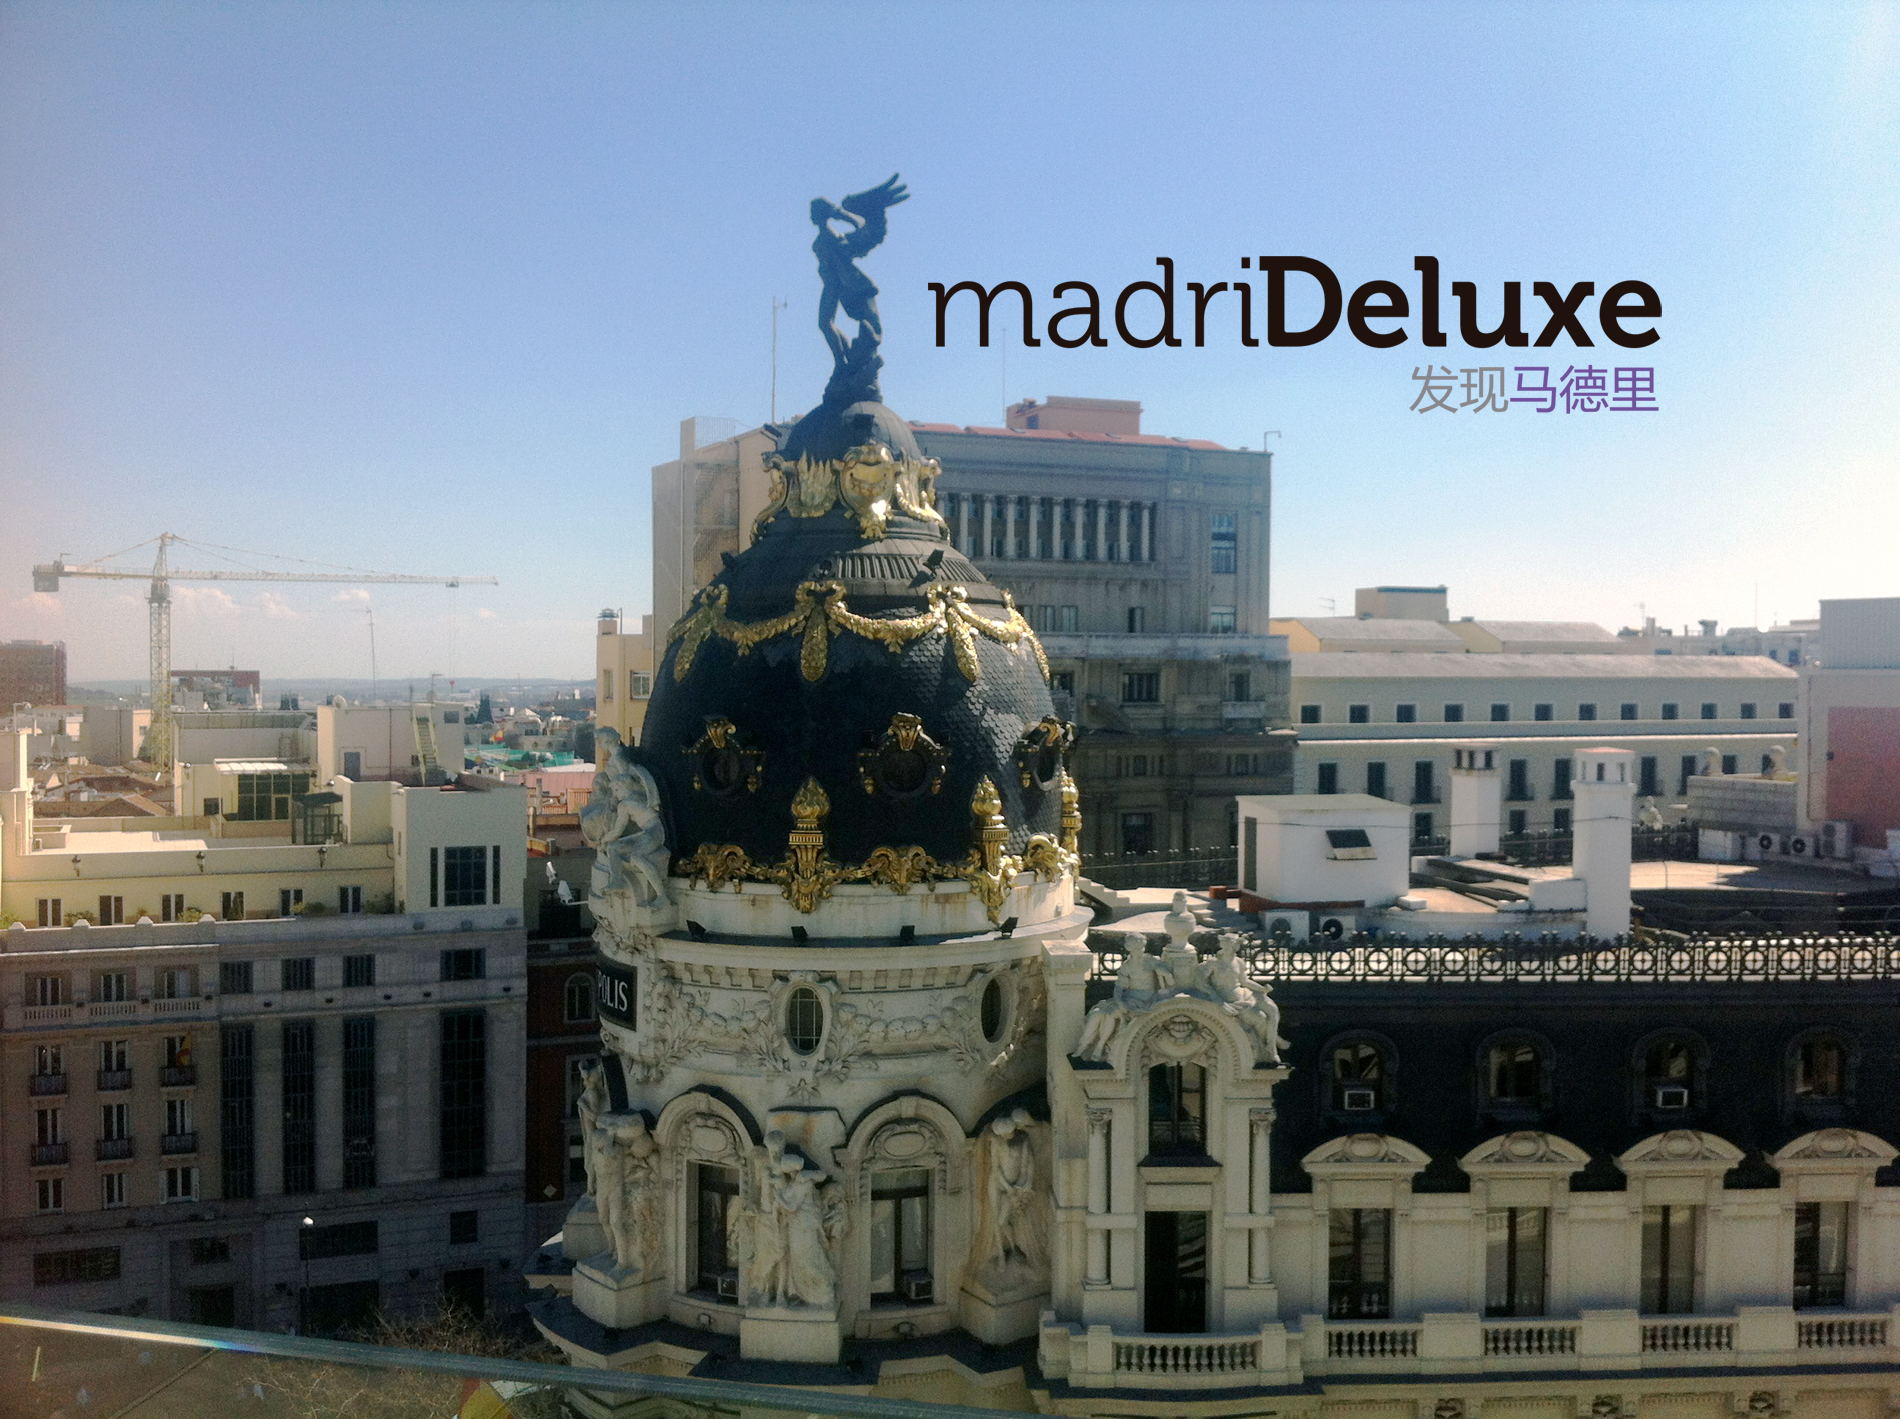 portada_madrideluxe_Canalarte_comunicacion_communication_marketing_eventos_events_networking_publicity_publicidad_bloggers